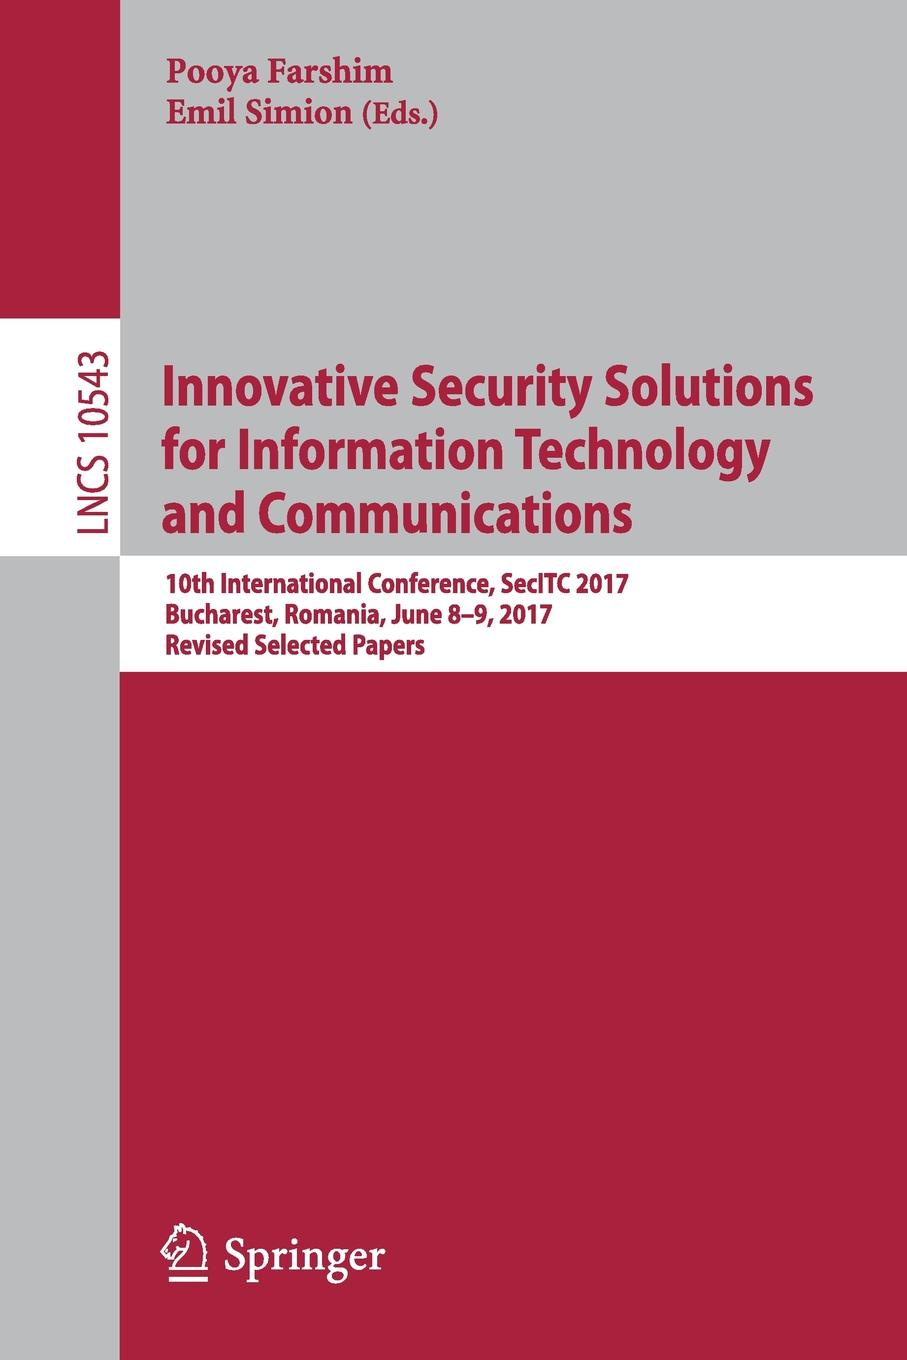 Innovative Security Solutions for Information Technology and Communications. 10th International Conference, SecITC 2017, Bucharest, Romania, June 8-9, 2017, Revised Selected Papers qi huang innovative testing and measurement solutions for smart grid